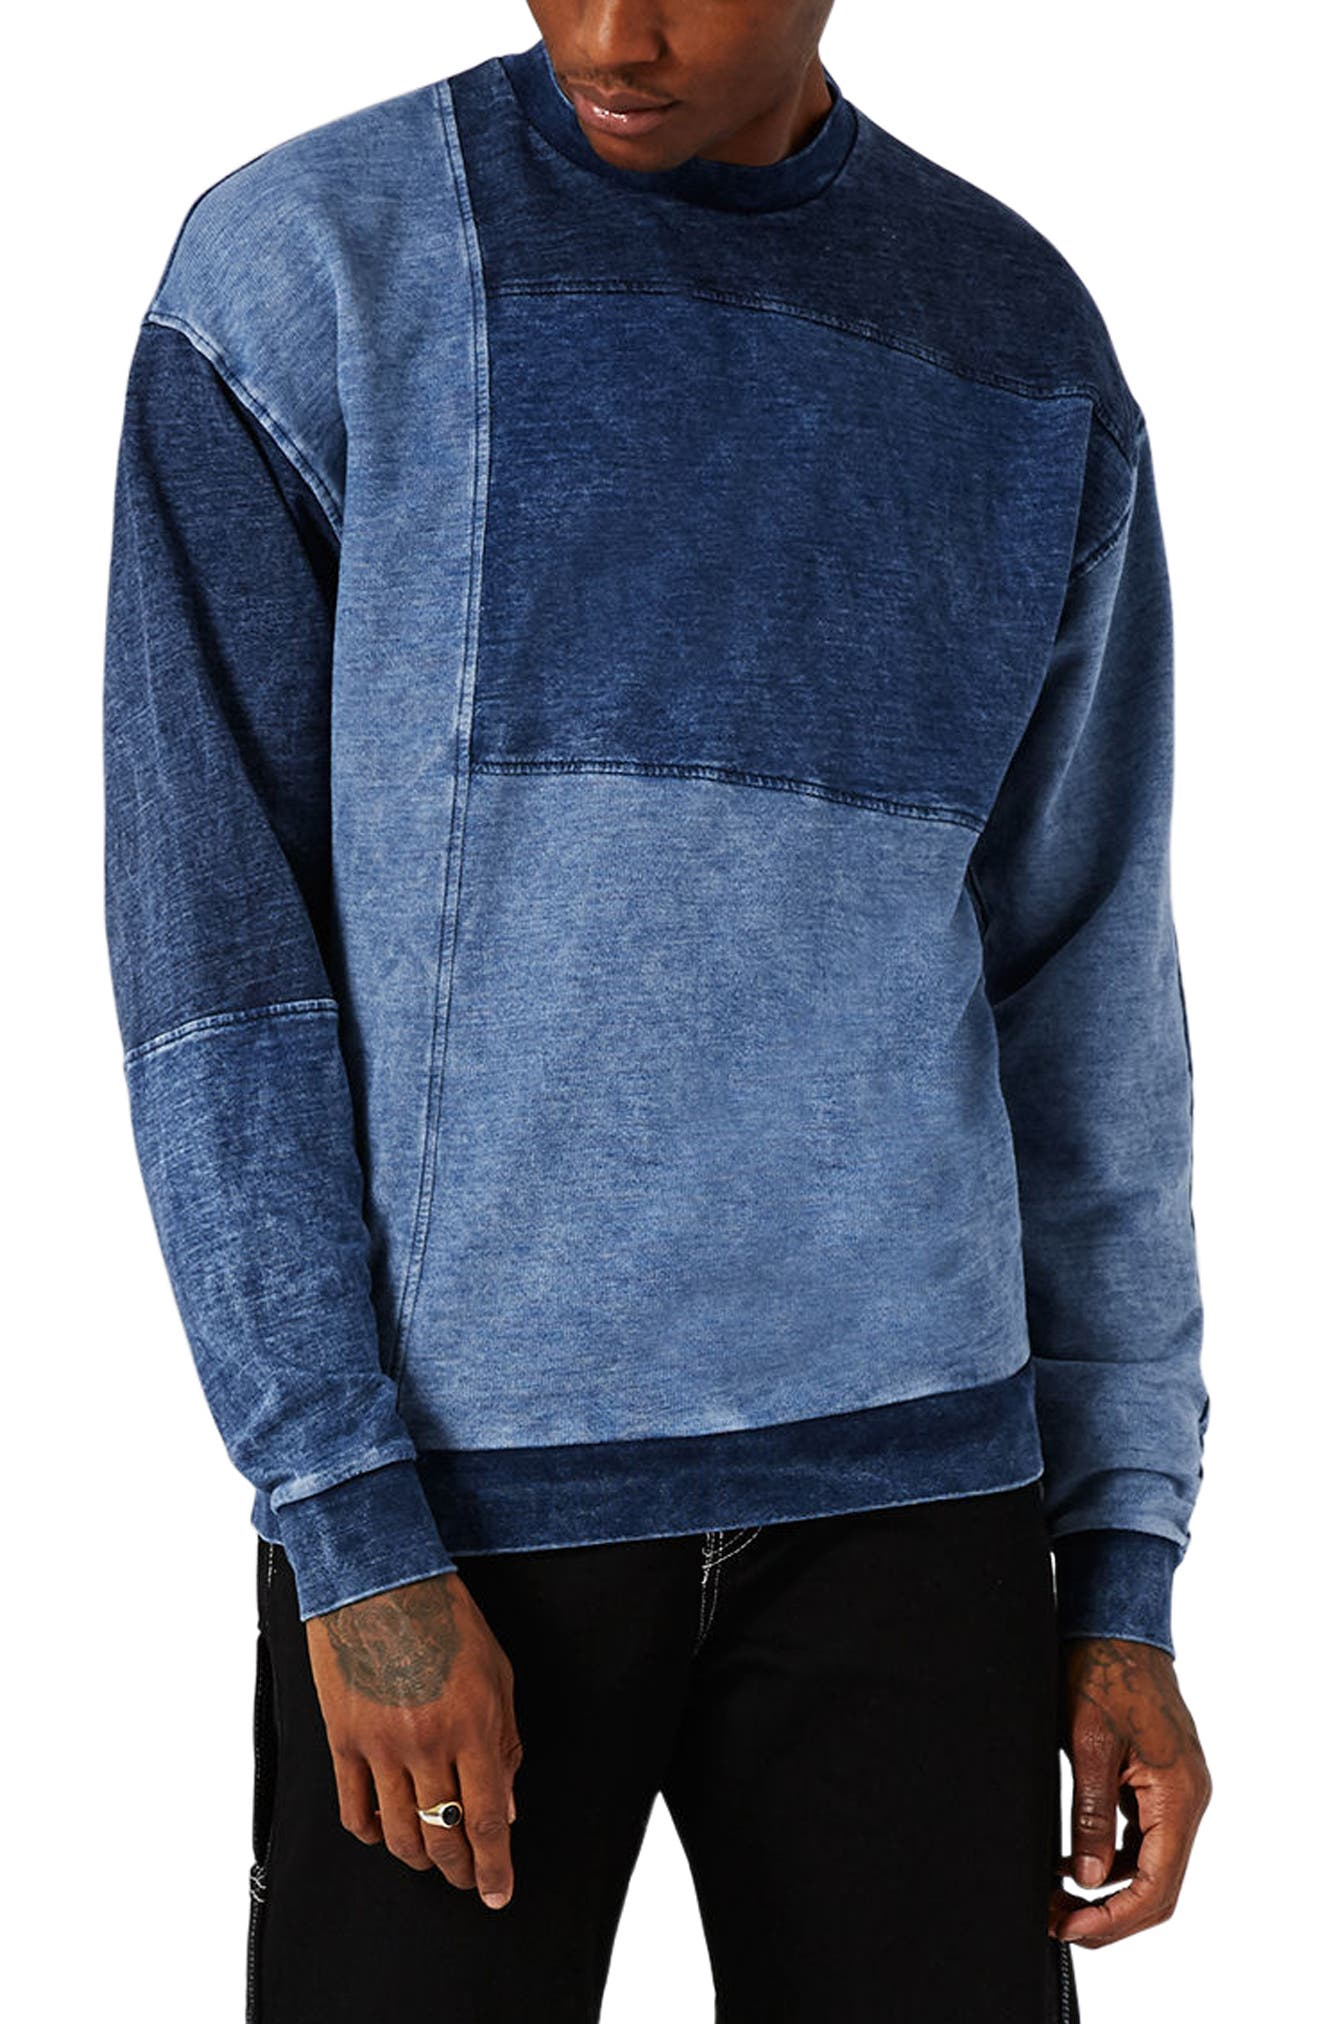 Topman Denim Panel Sweatshirt